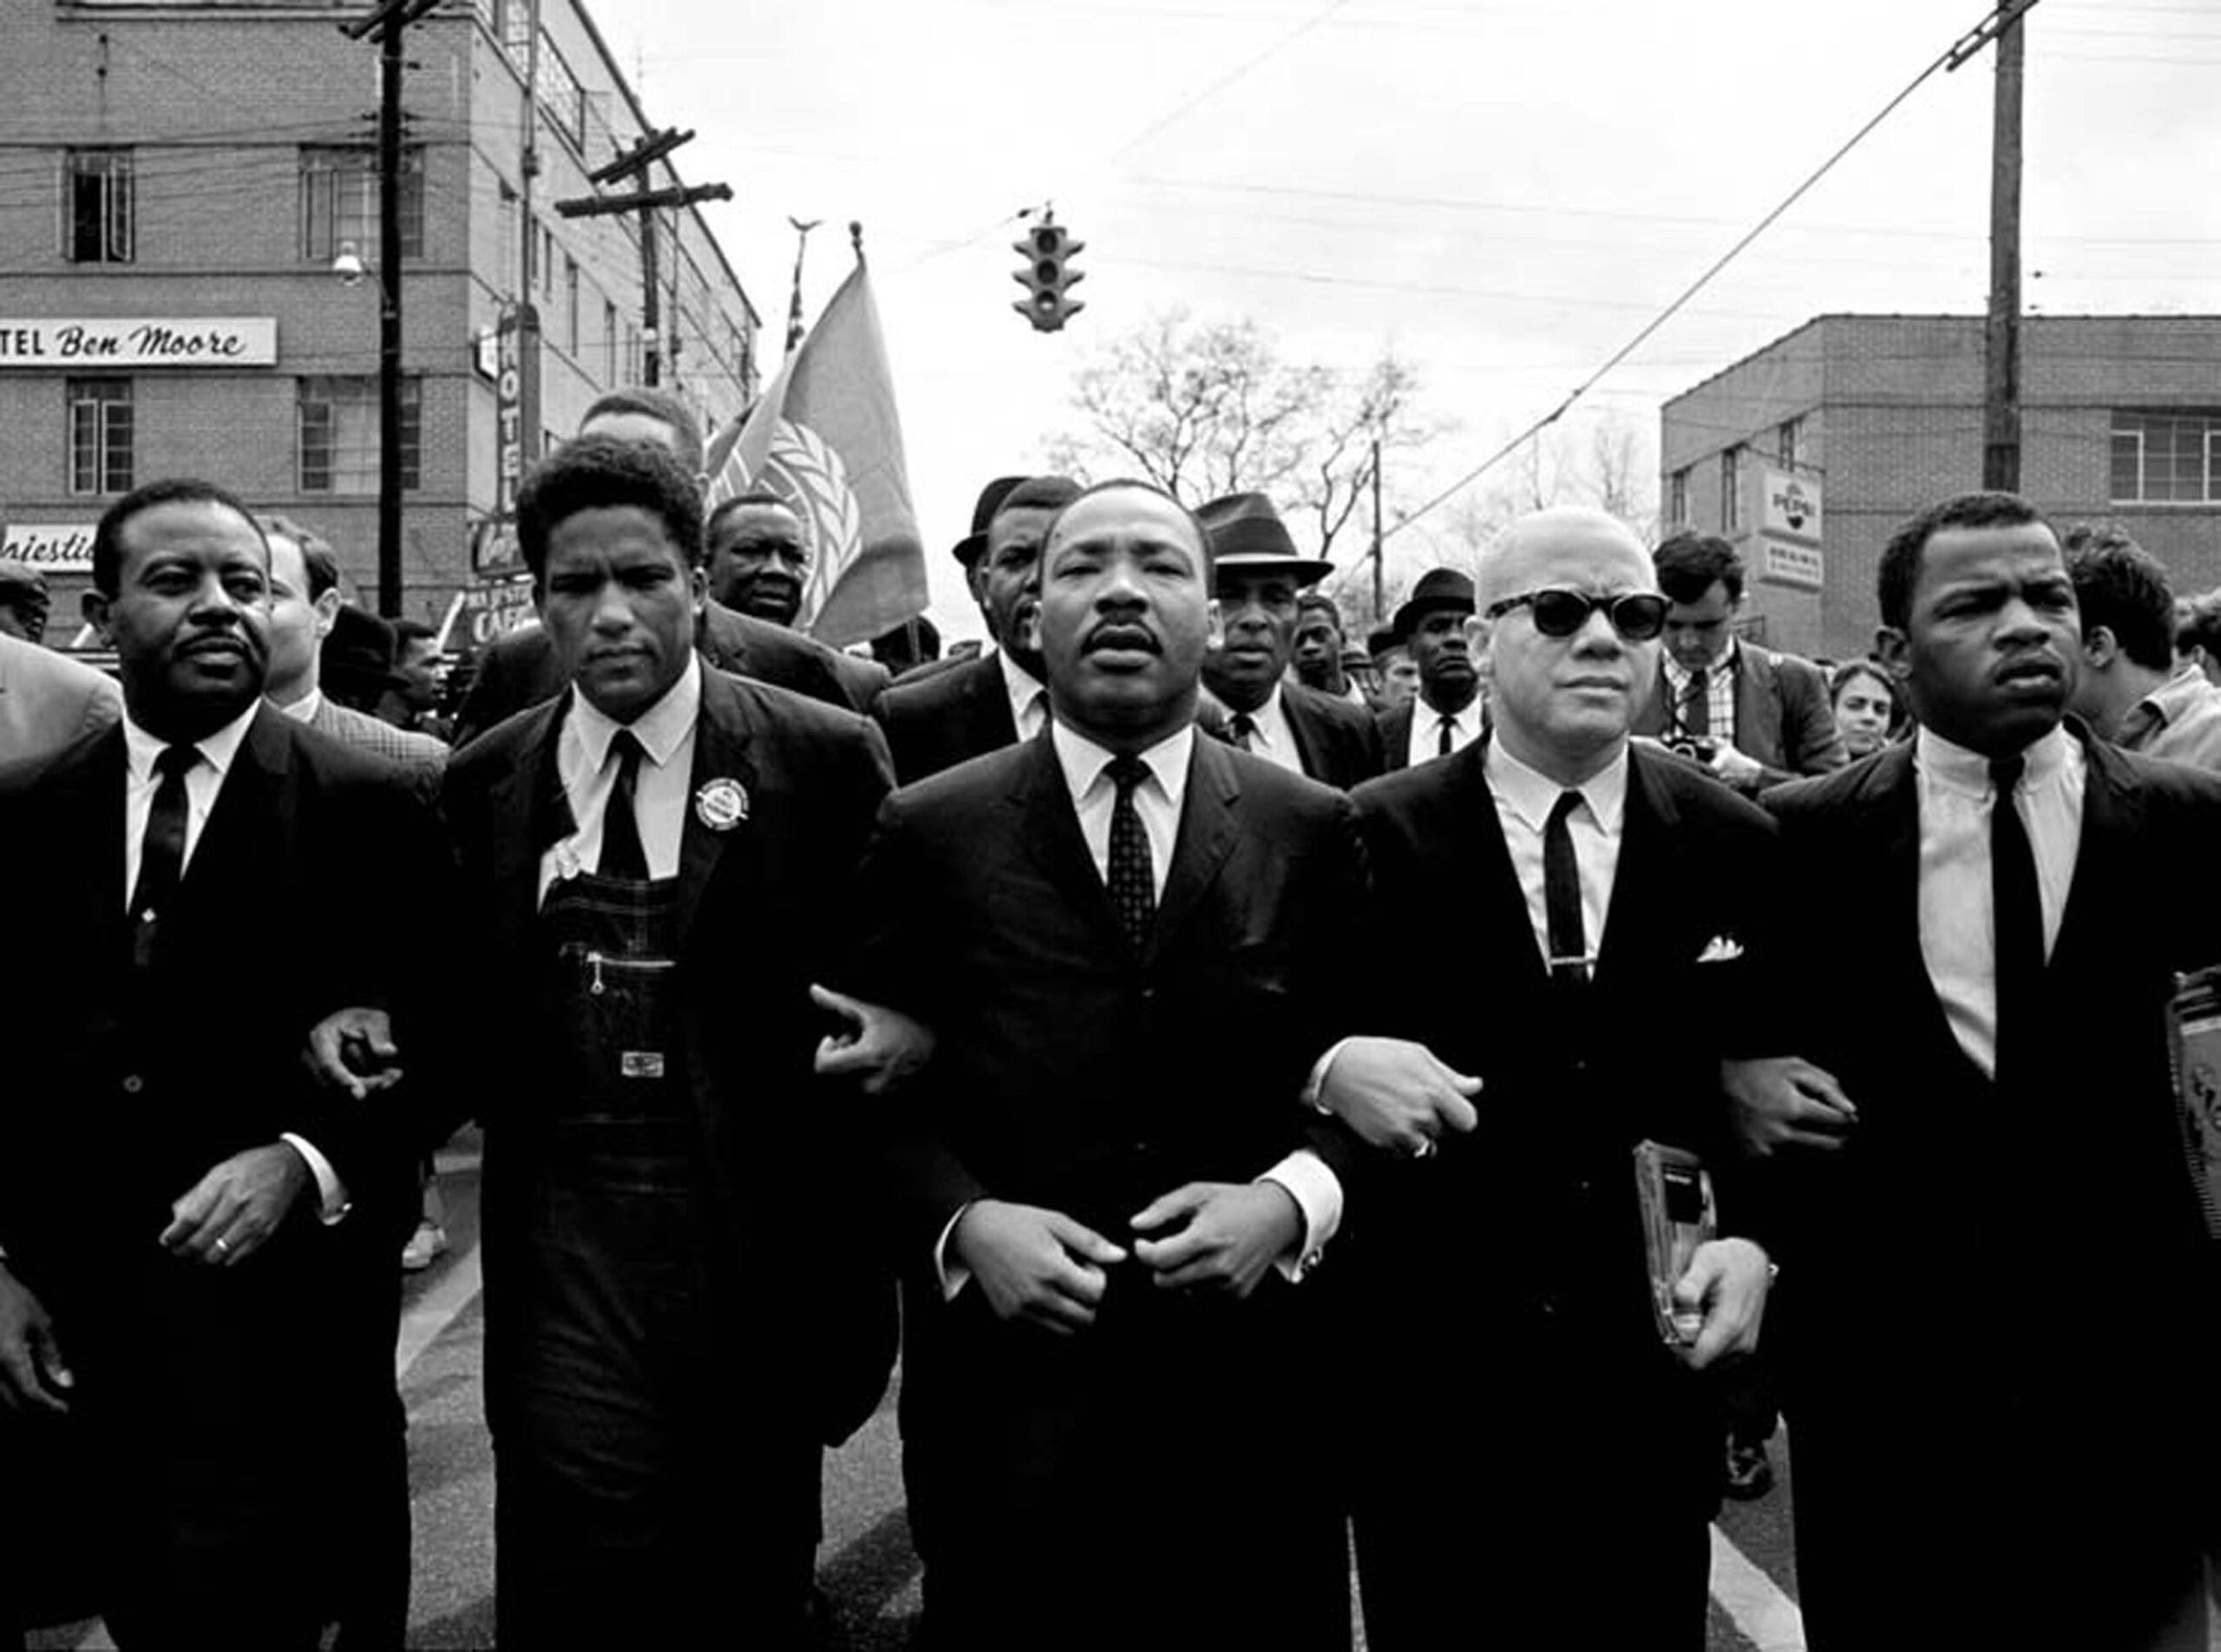 Dr. Martin Luther King, Jr. Marching for Voting Rights with John Lewis, Reverend Jesse Douglas, James Forman and Ralph Abernathy, Selma, 1965.